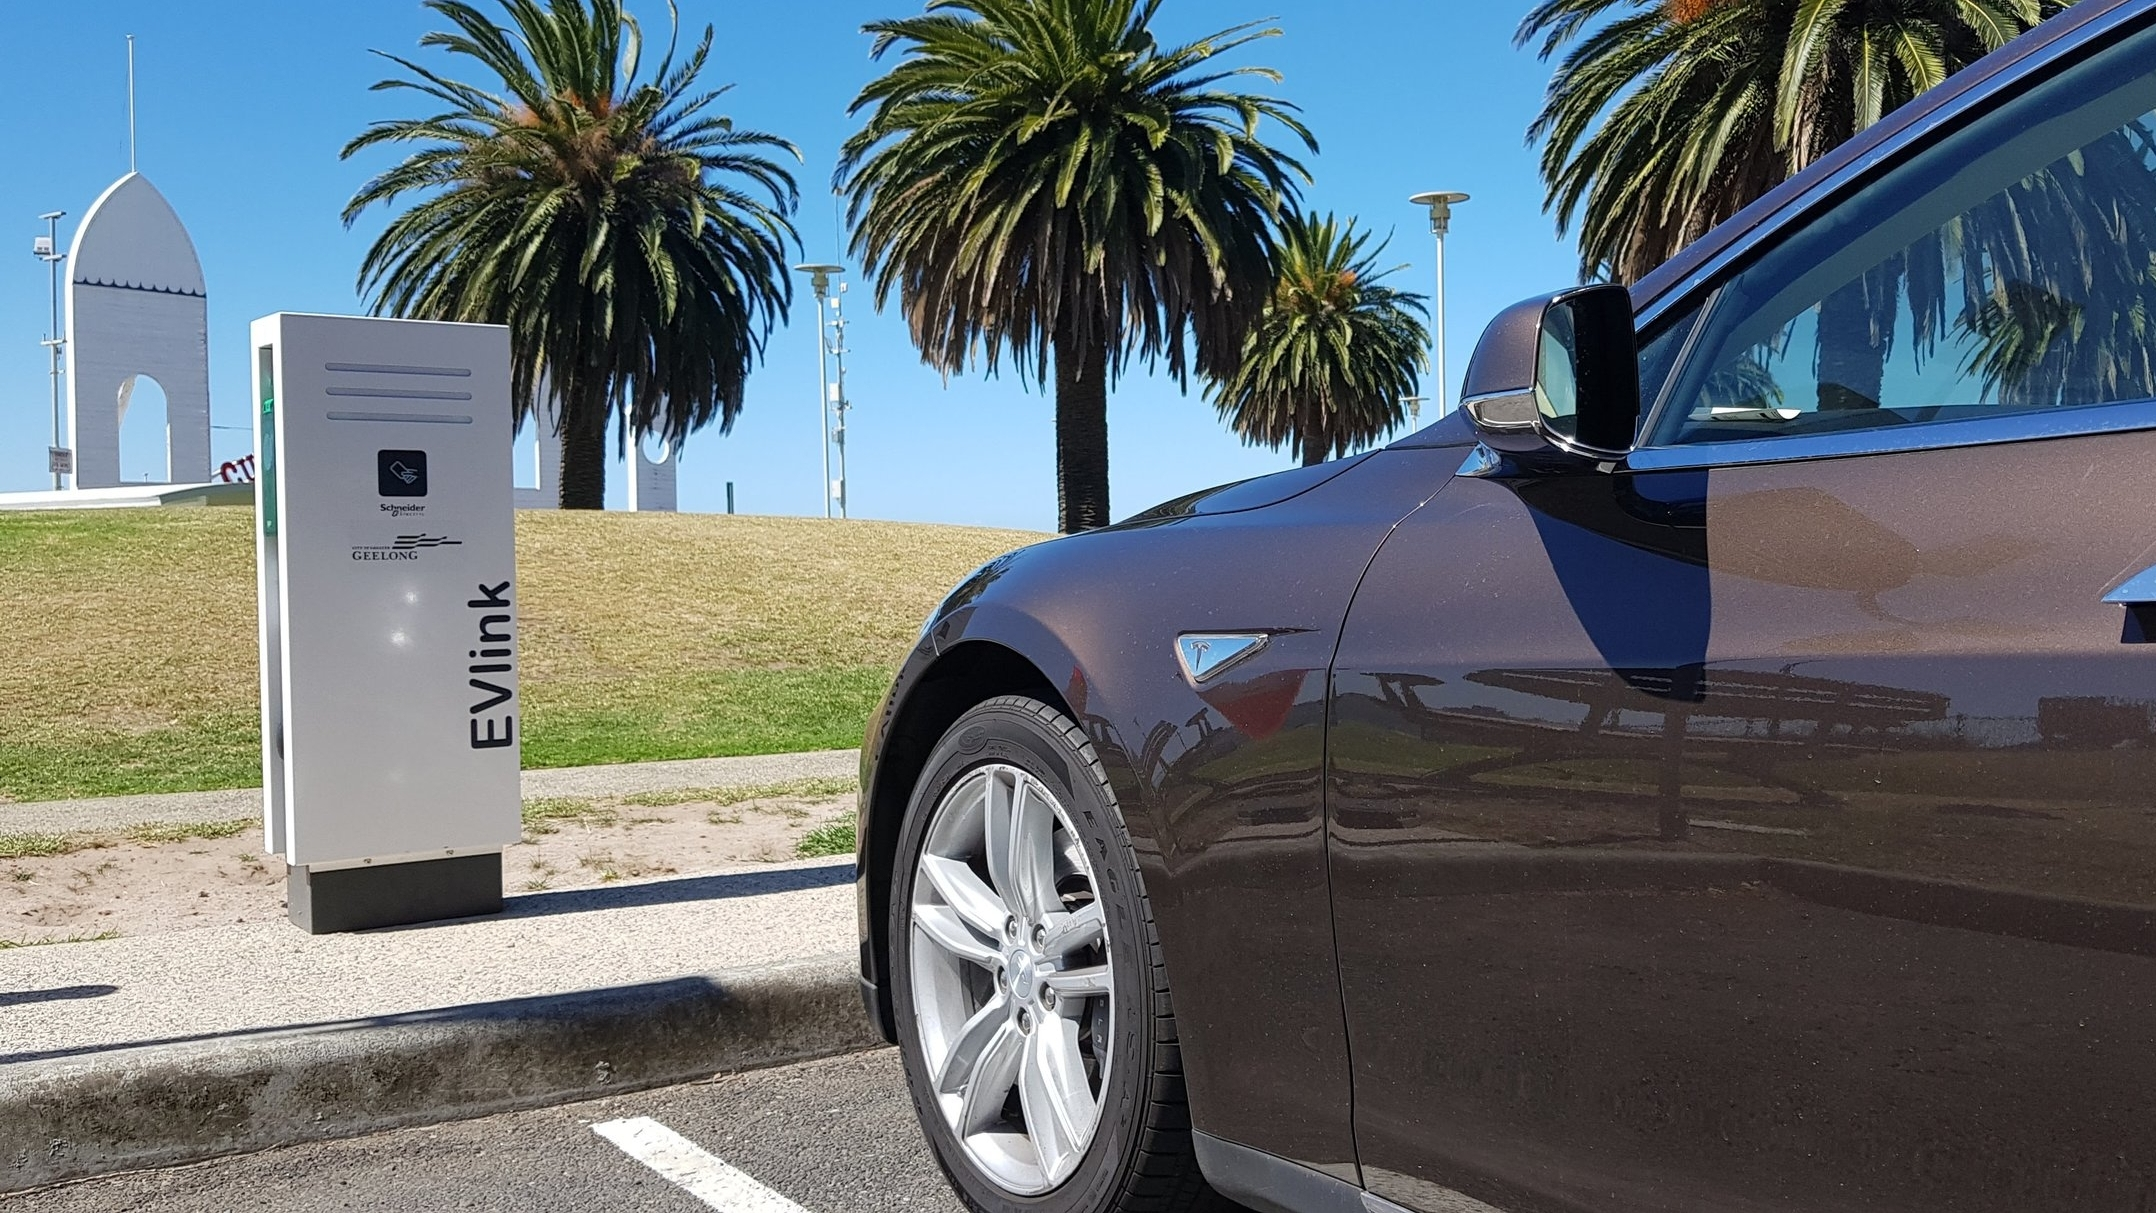 Where do I charge? - Don't just charge at home - find out your options for destination and public charging